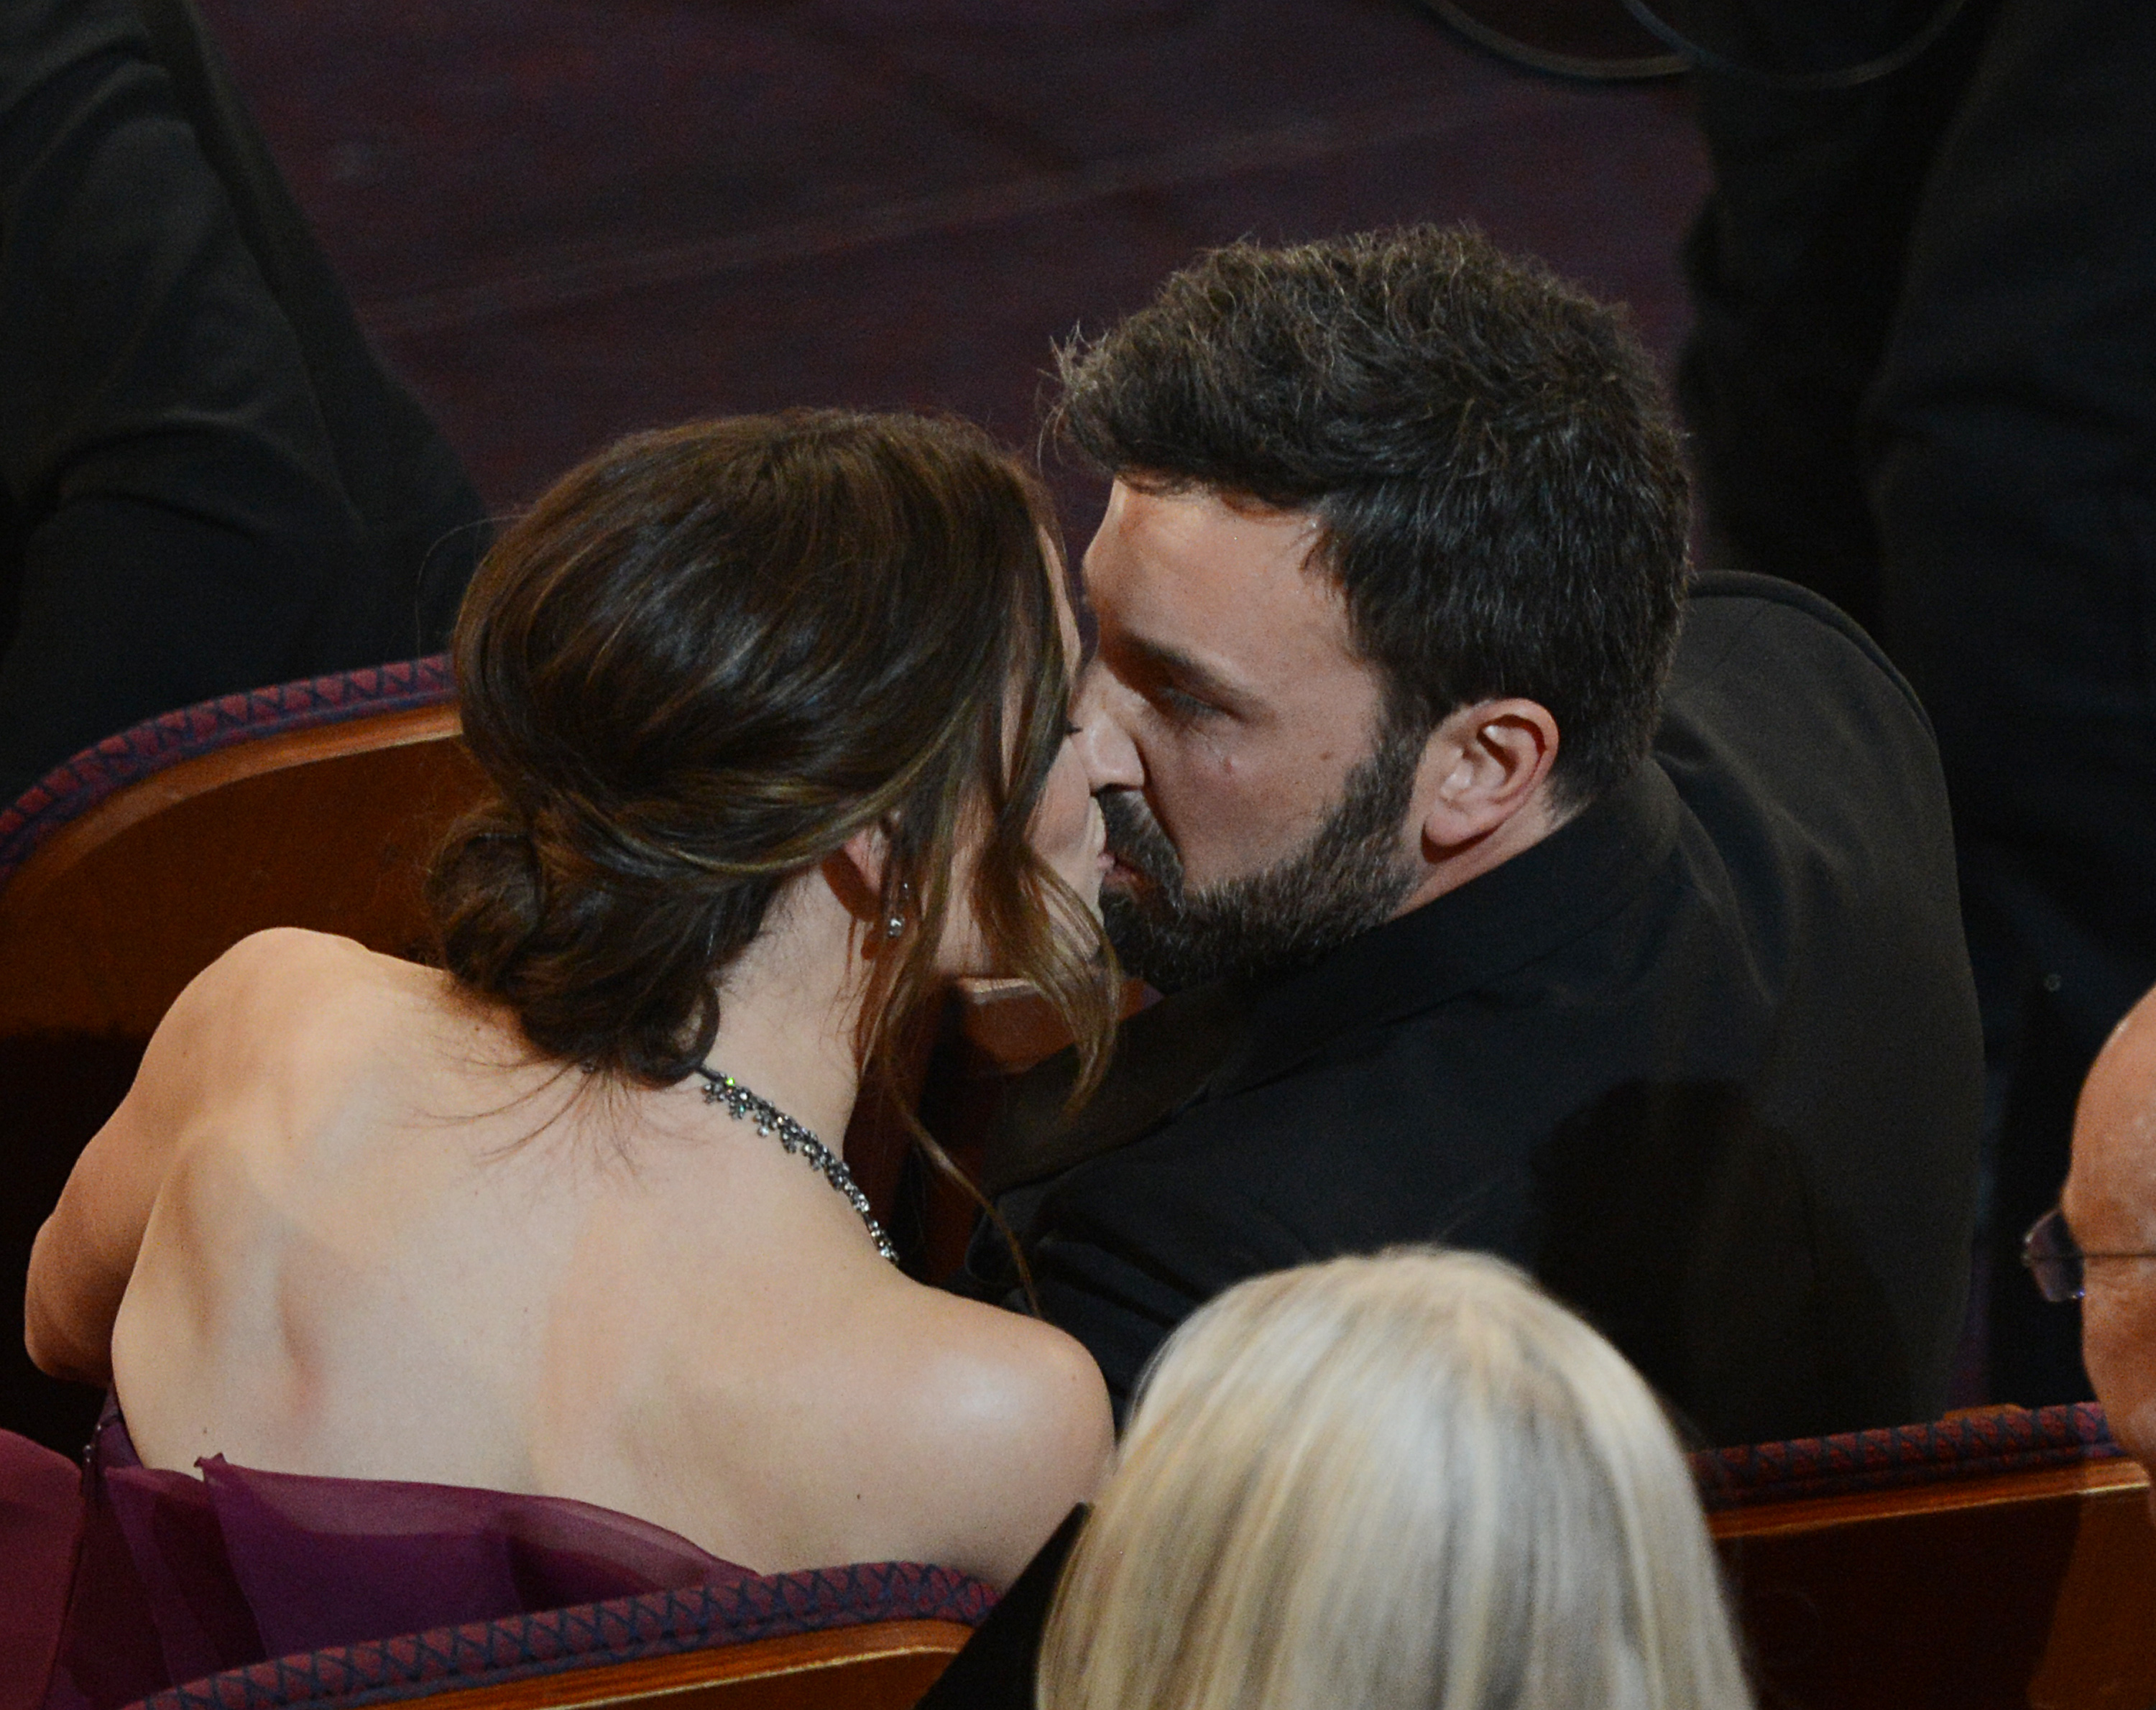 Jennifer Garner and Ben Affleck shared a kiss in the Oscars audience.